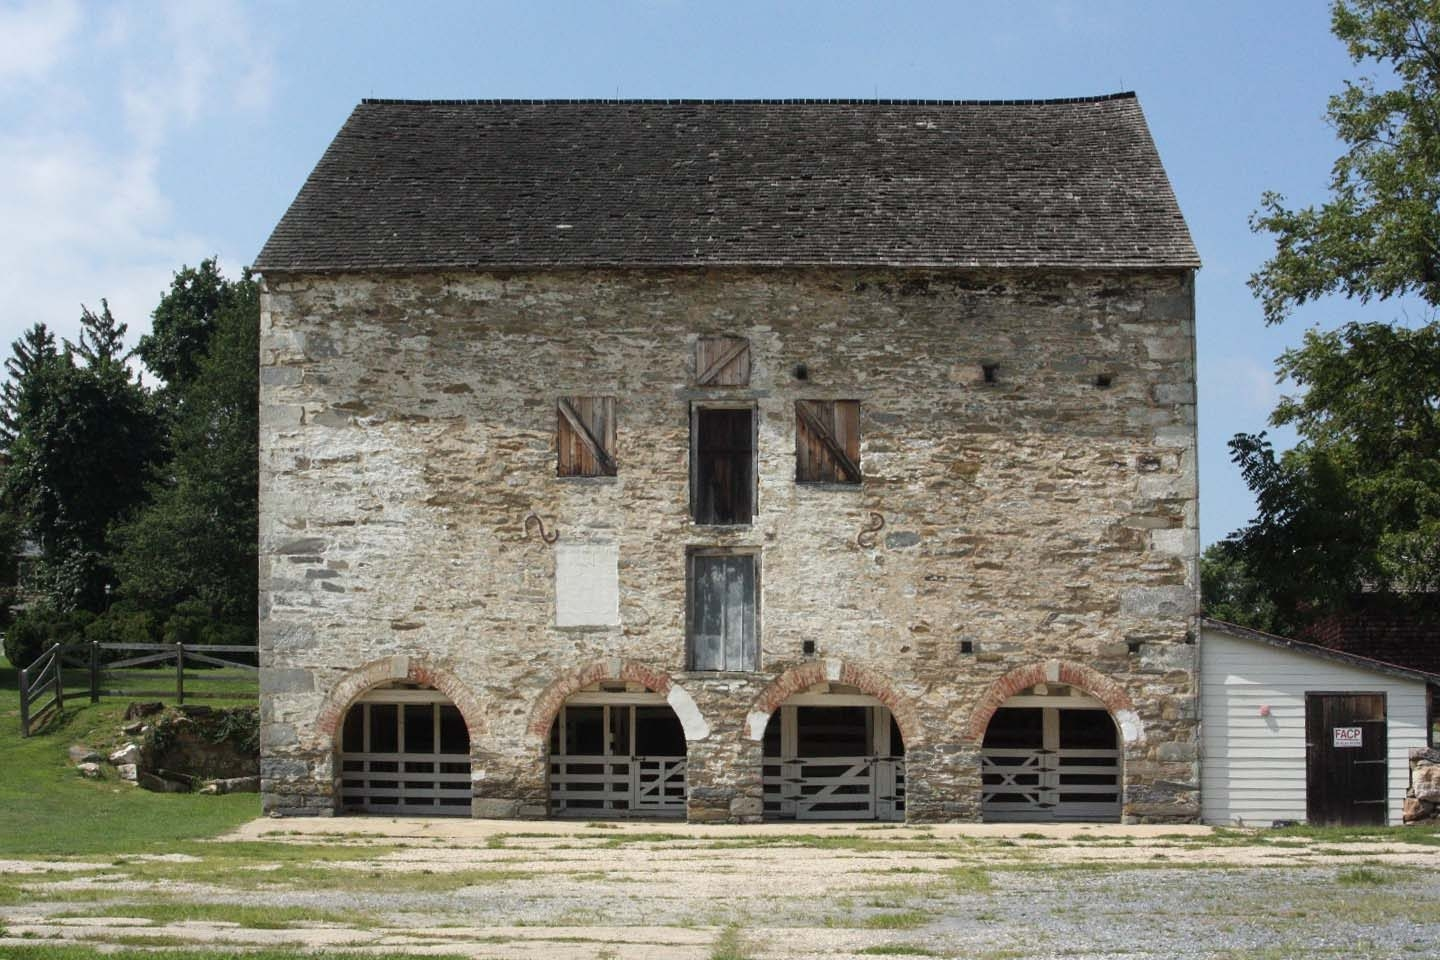 Woodlawn Manor's stone barn (image from Historic Markers Database)